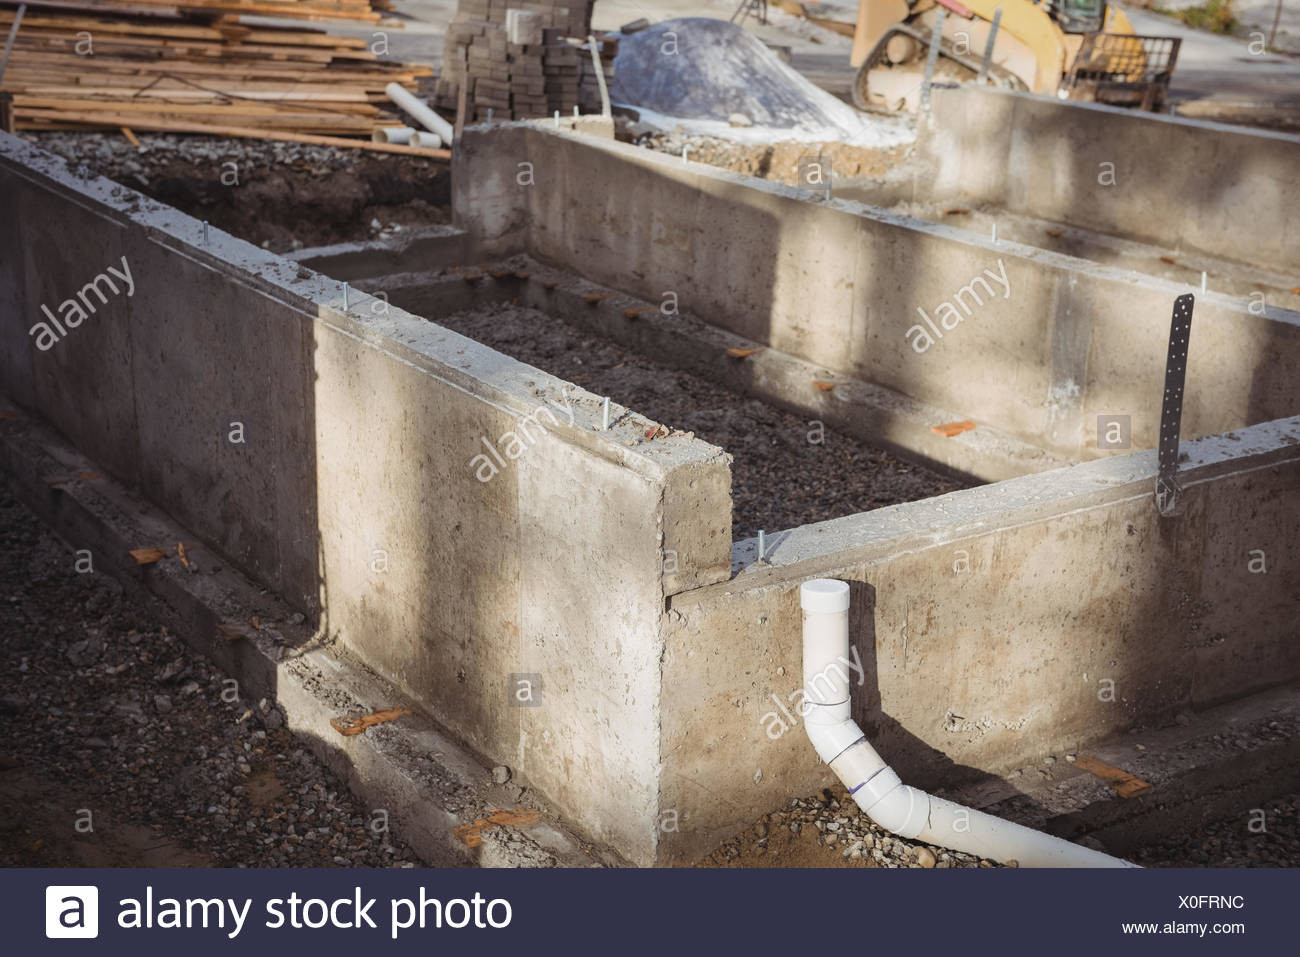 Concrete Foundation And Drainage Pipe Stock Photo Alamy